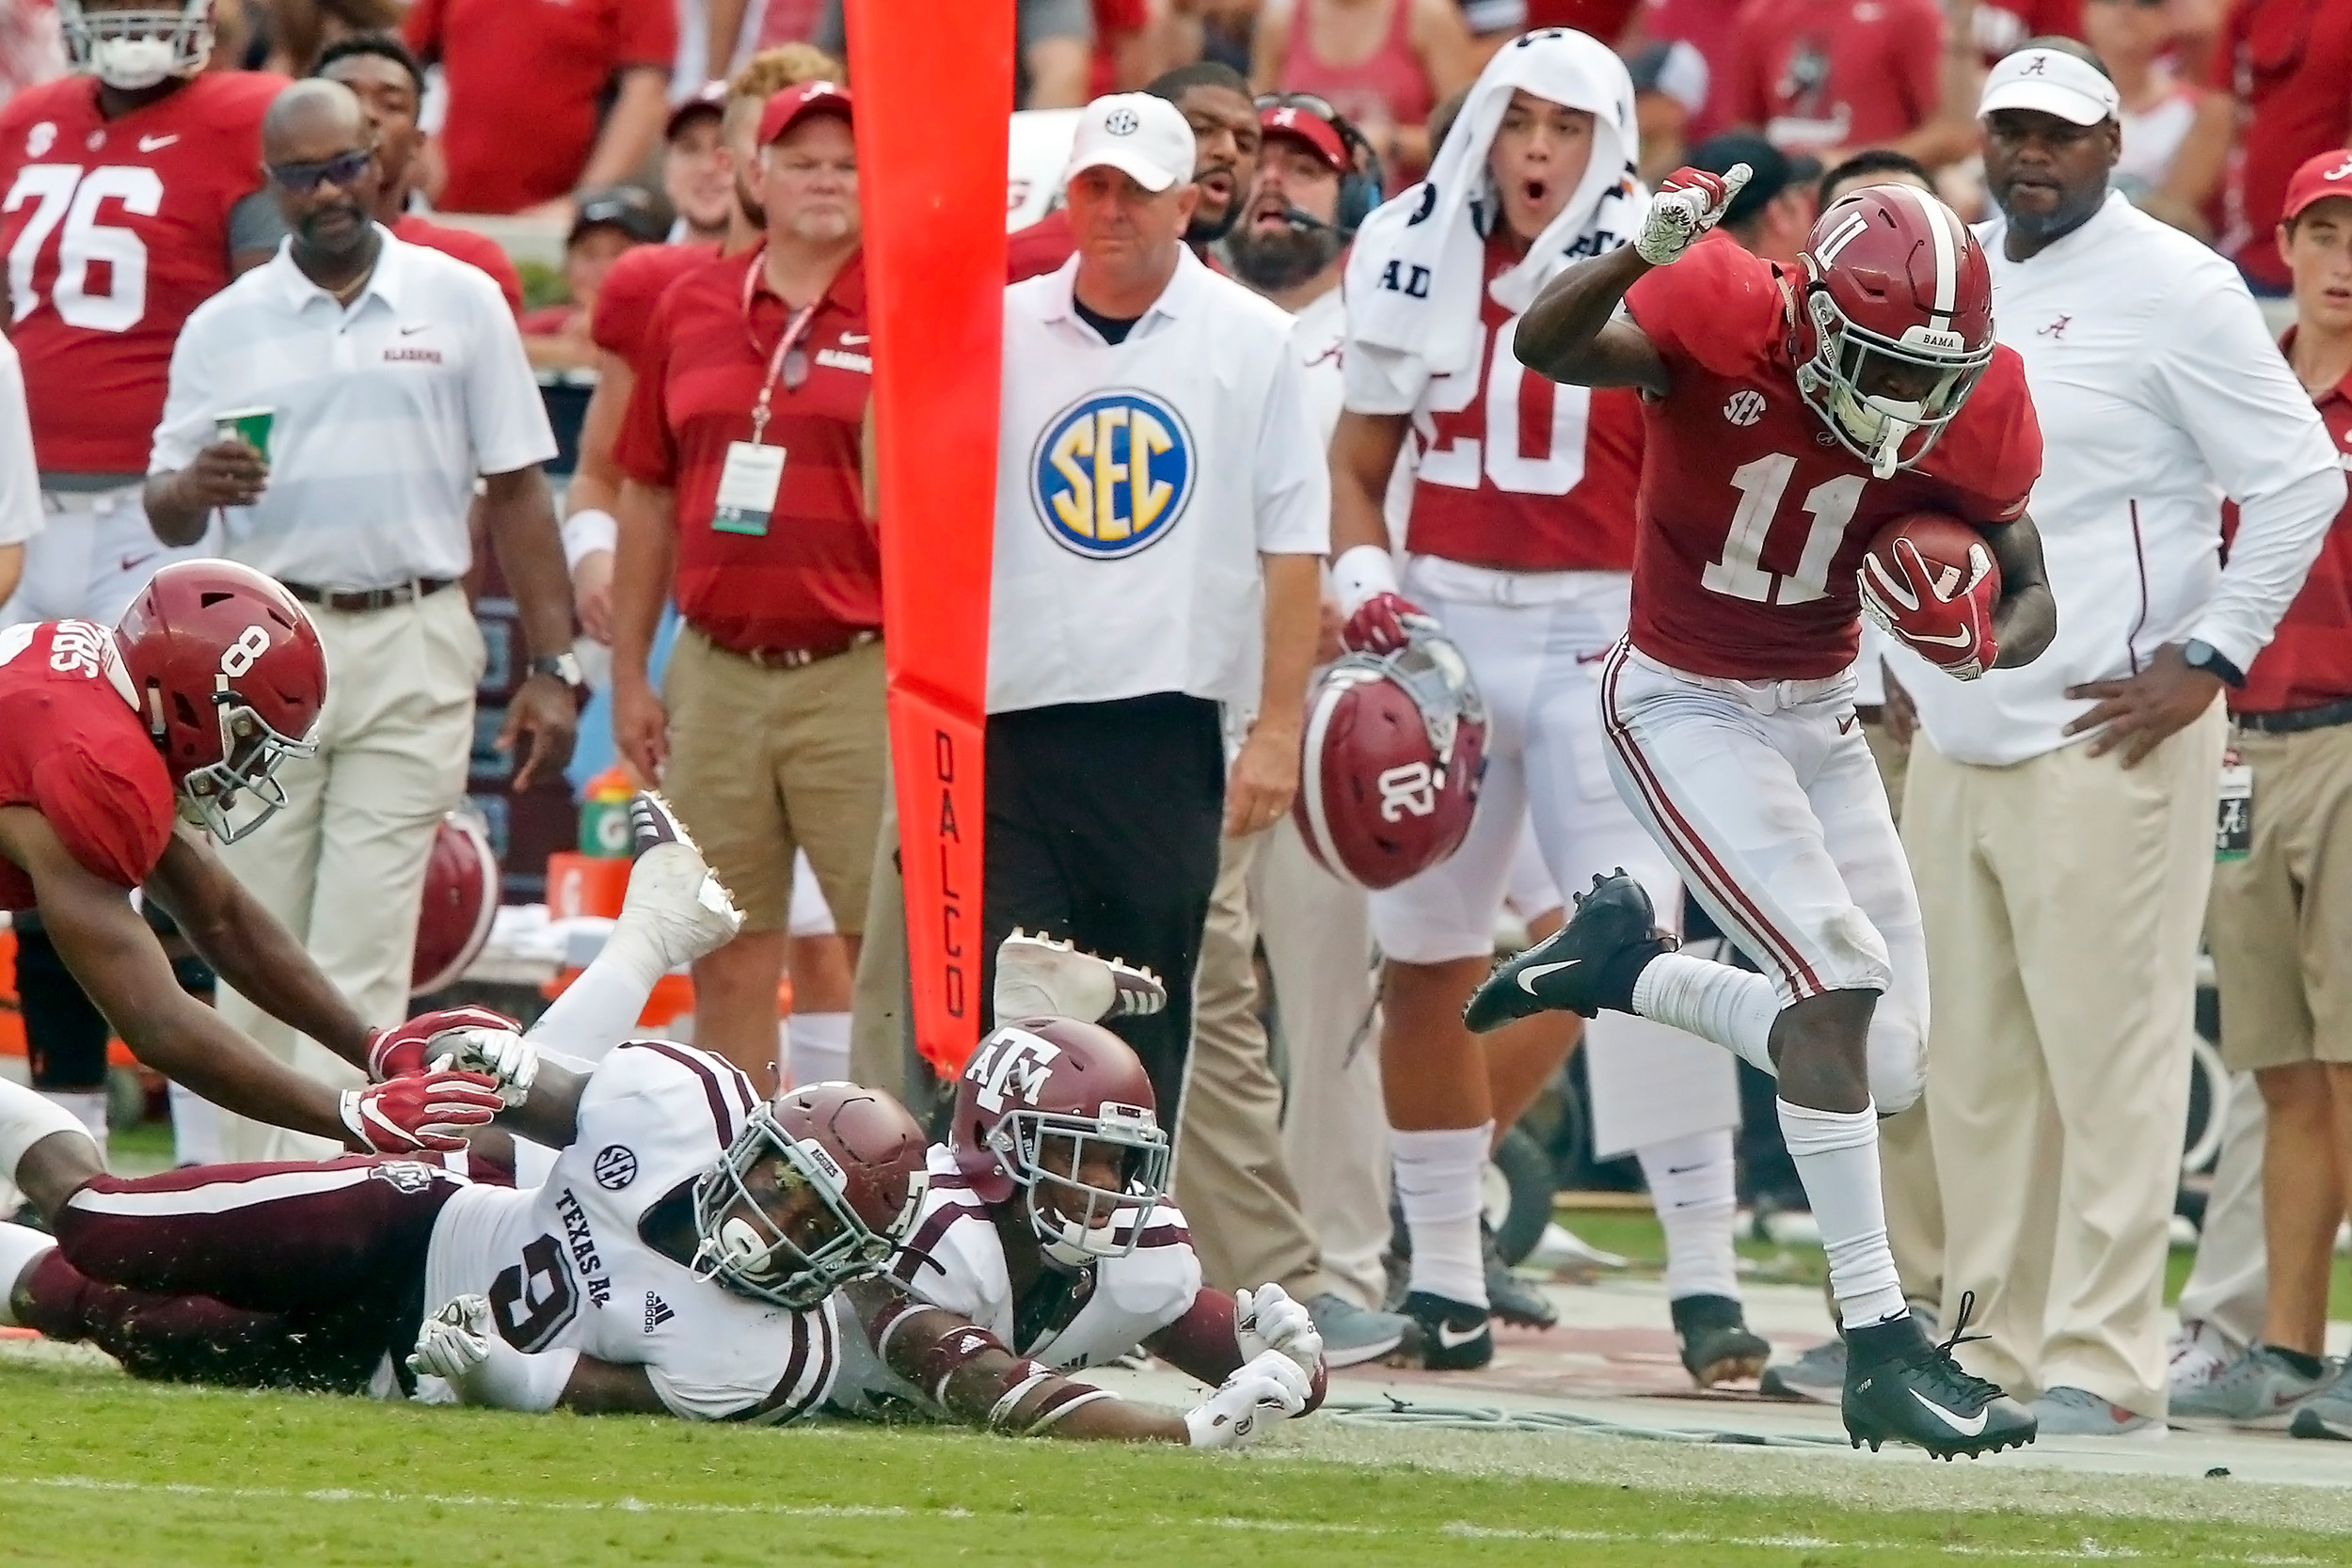 Alabama Crimson Tide wide receiver Henry Ruggs III (11) tip-toes the sideline before rushing to the end zone for a touchdown during the game with against the Texas A&M Aggies at Bryant-Denny Stadium.  Jason Clark / Daily Mountain Eagle